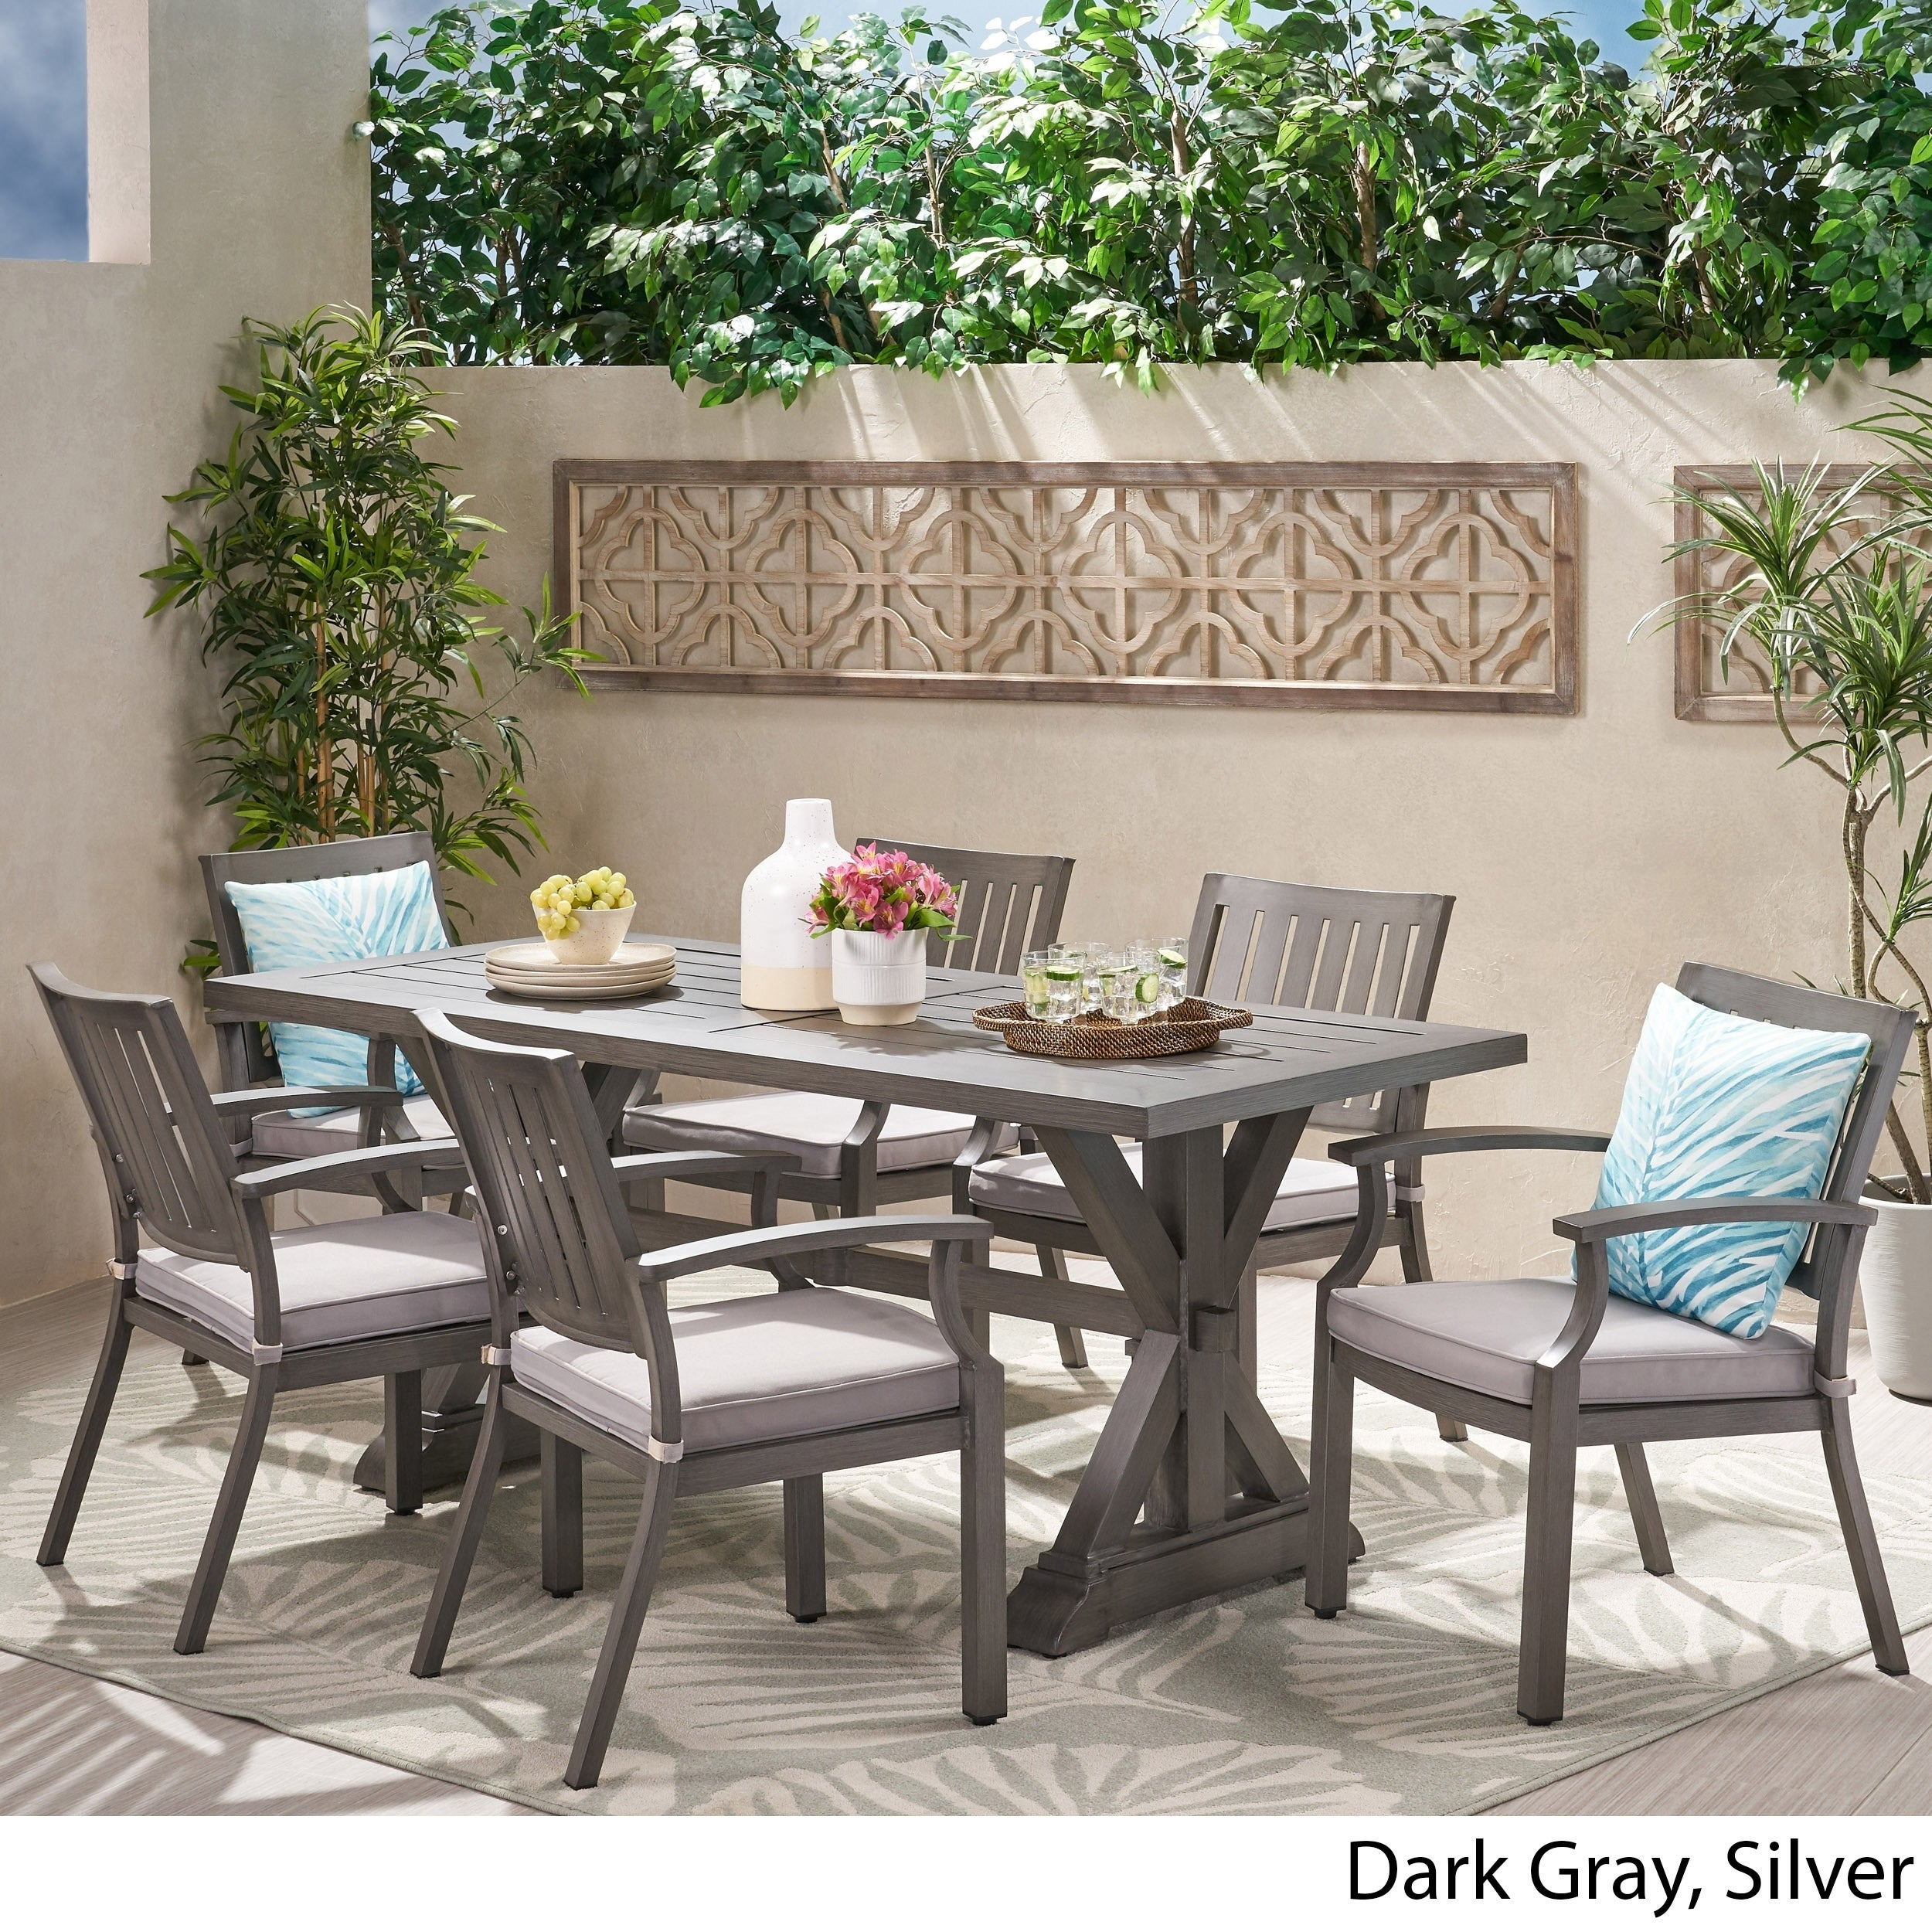 Lombok 7 Piece Outdoor Aluminum Dining Set With Cushions By Christopher Knight Home On Sale Overstock 30412443